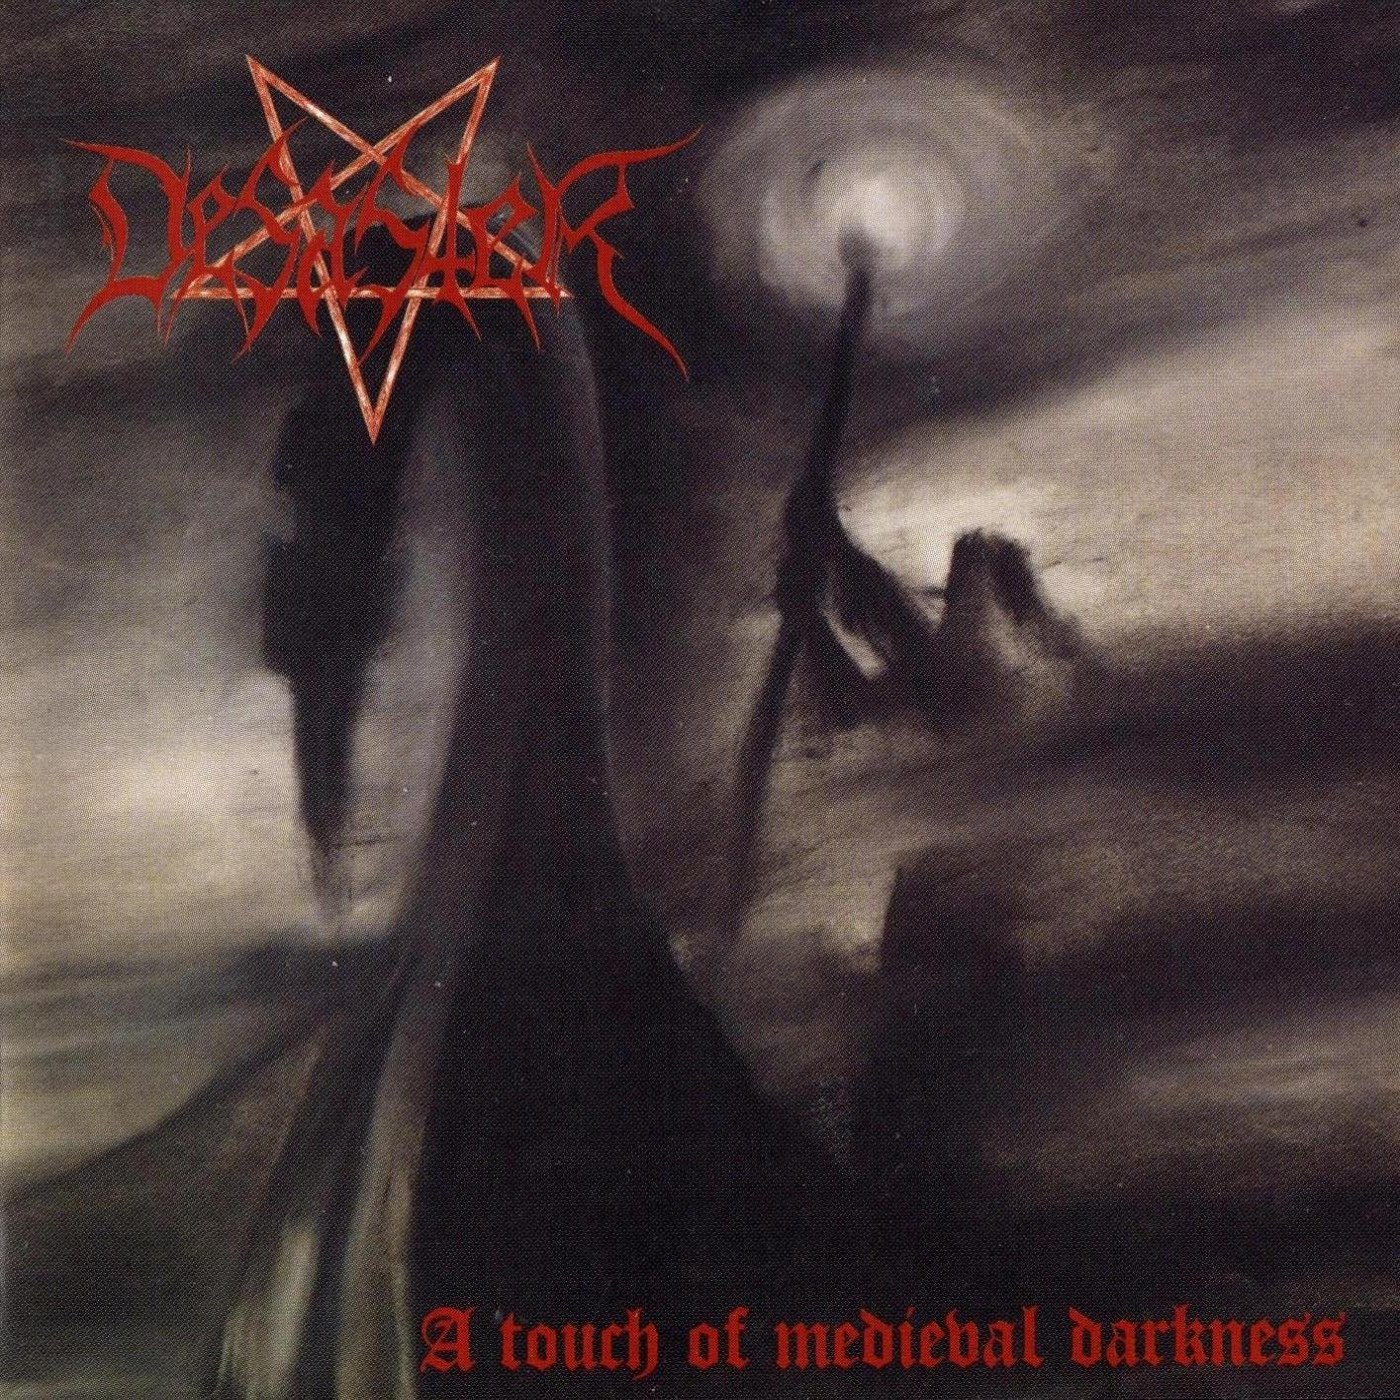 Review for Desaster - A Touch of Medieval Darkness